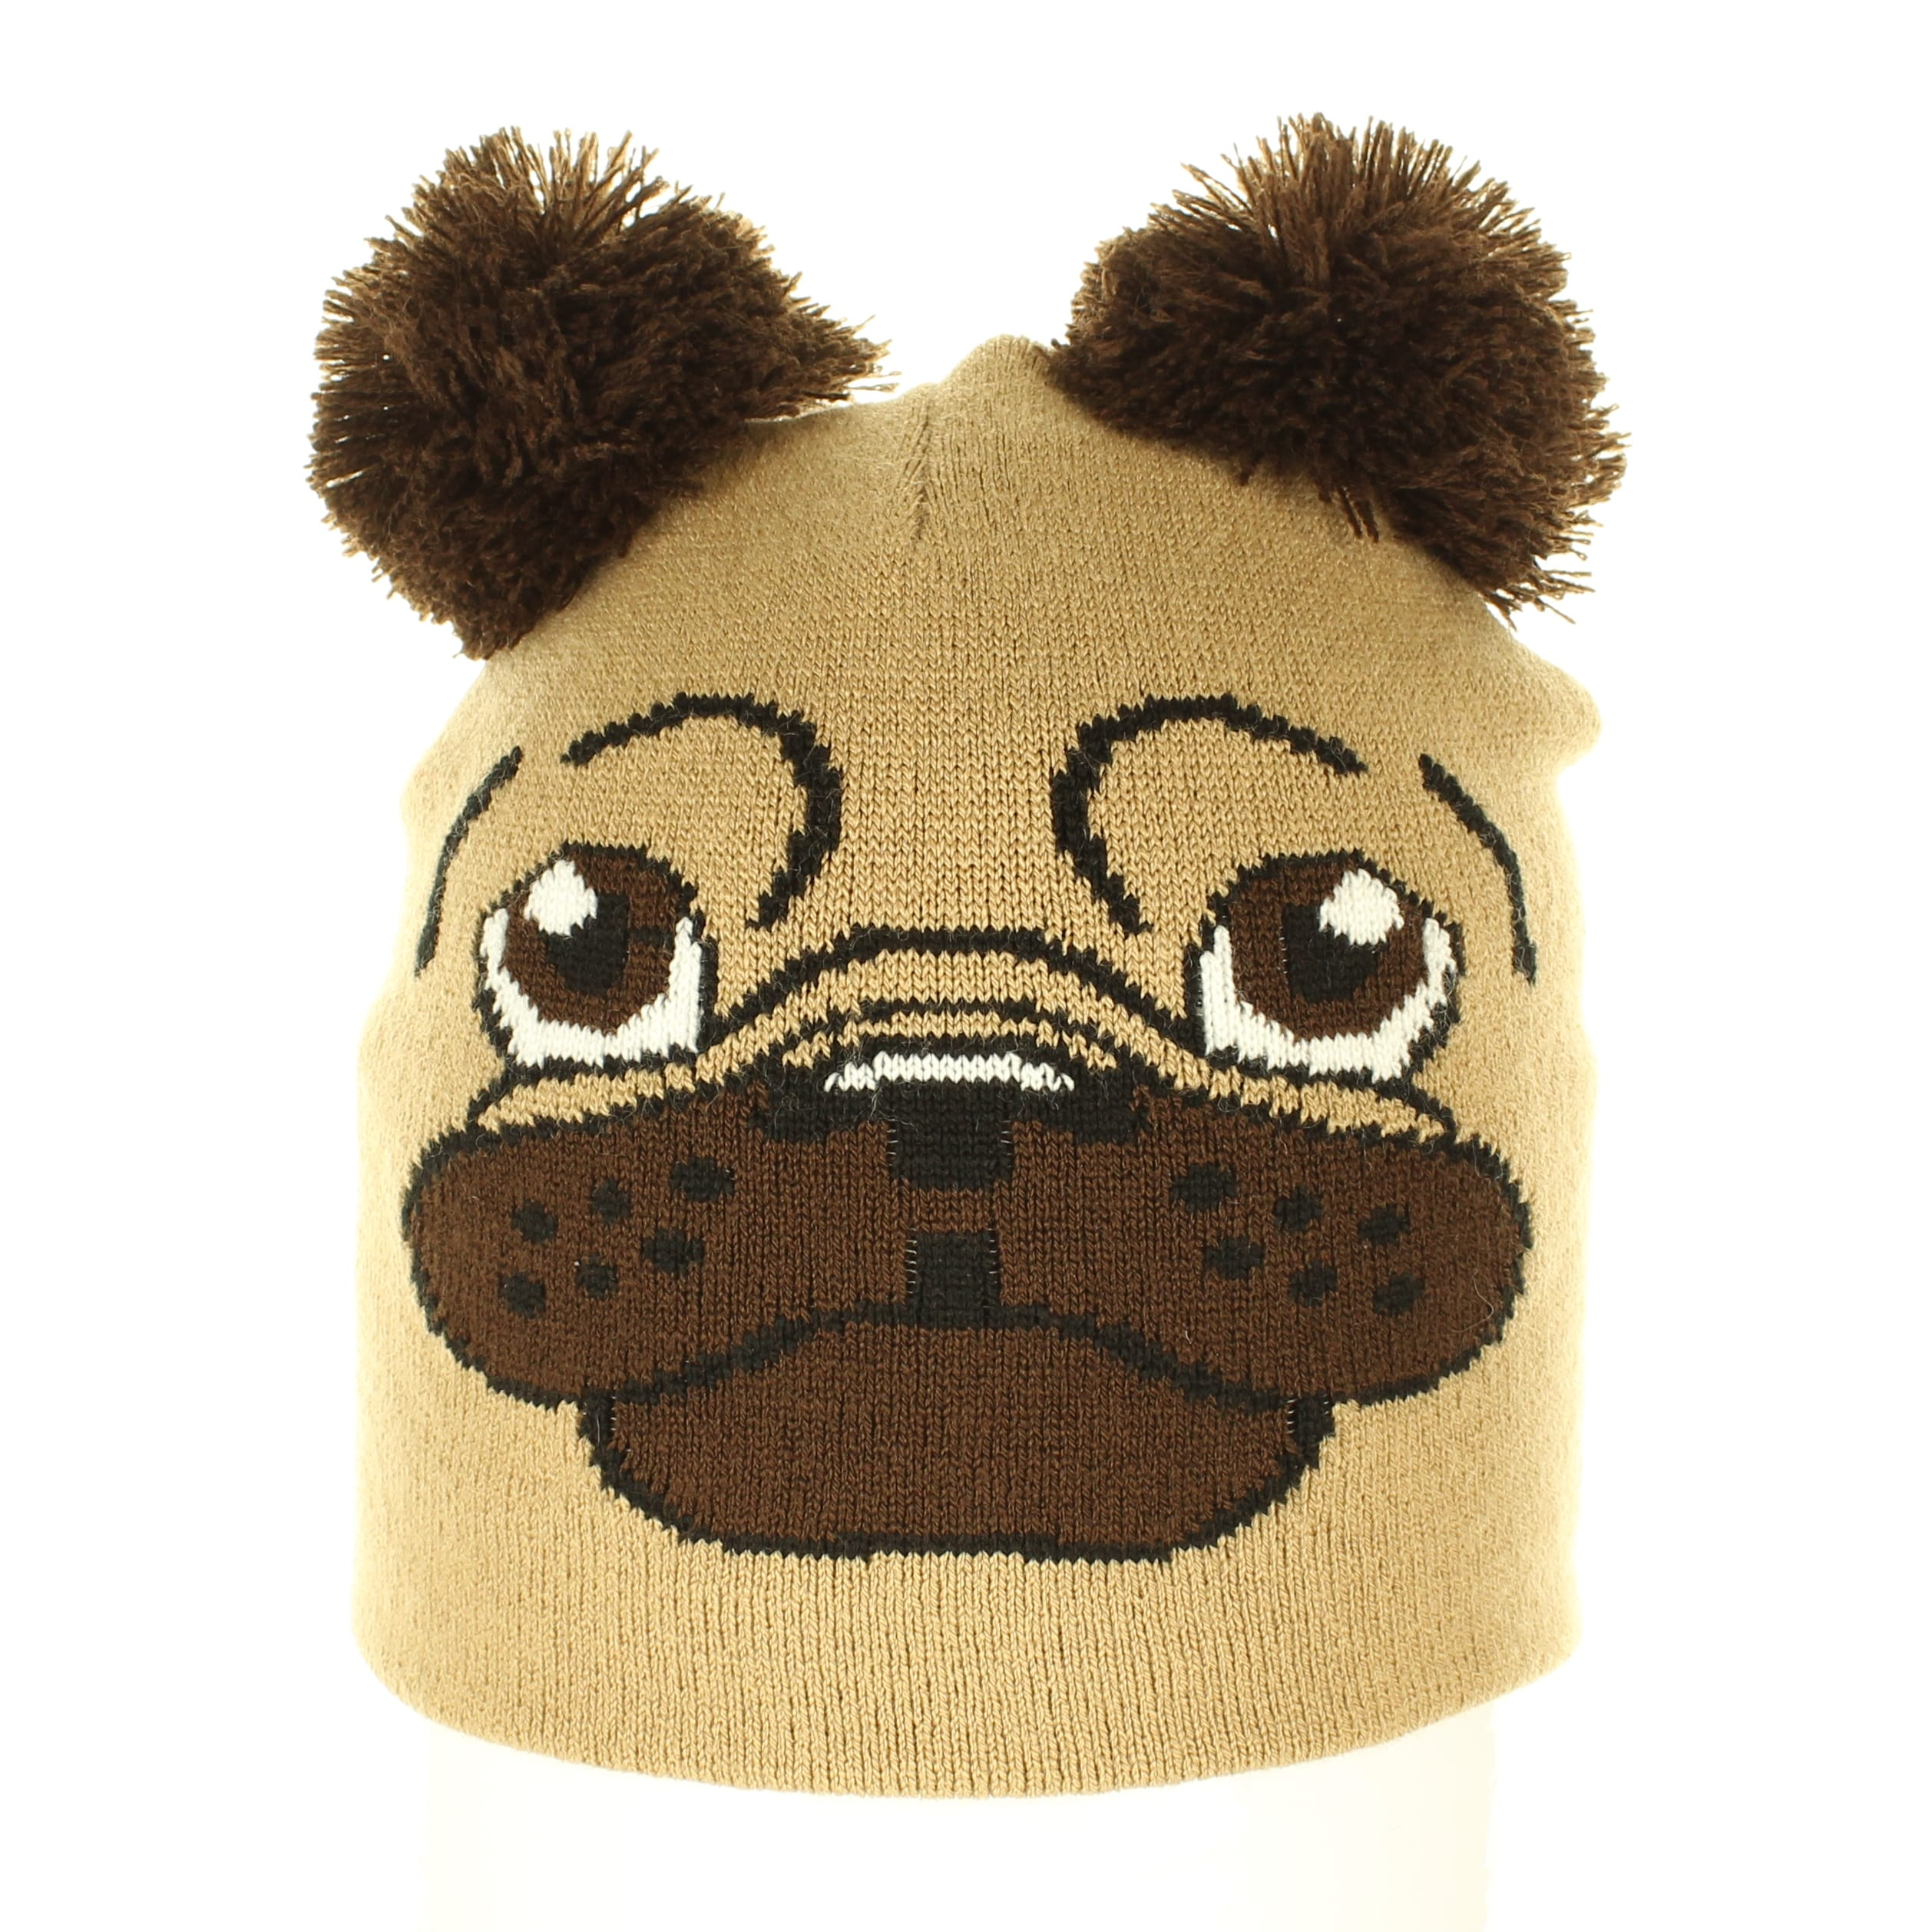 The Pug Beanie - Beanies USA b9fd97afd98